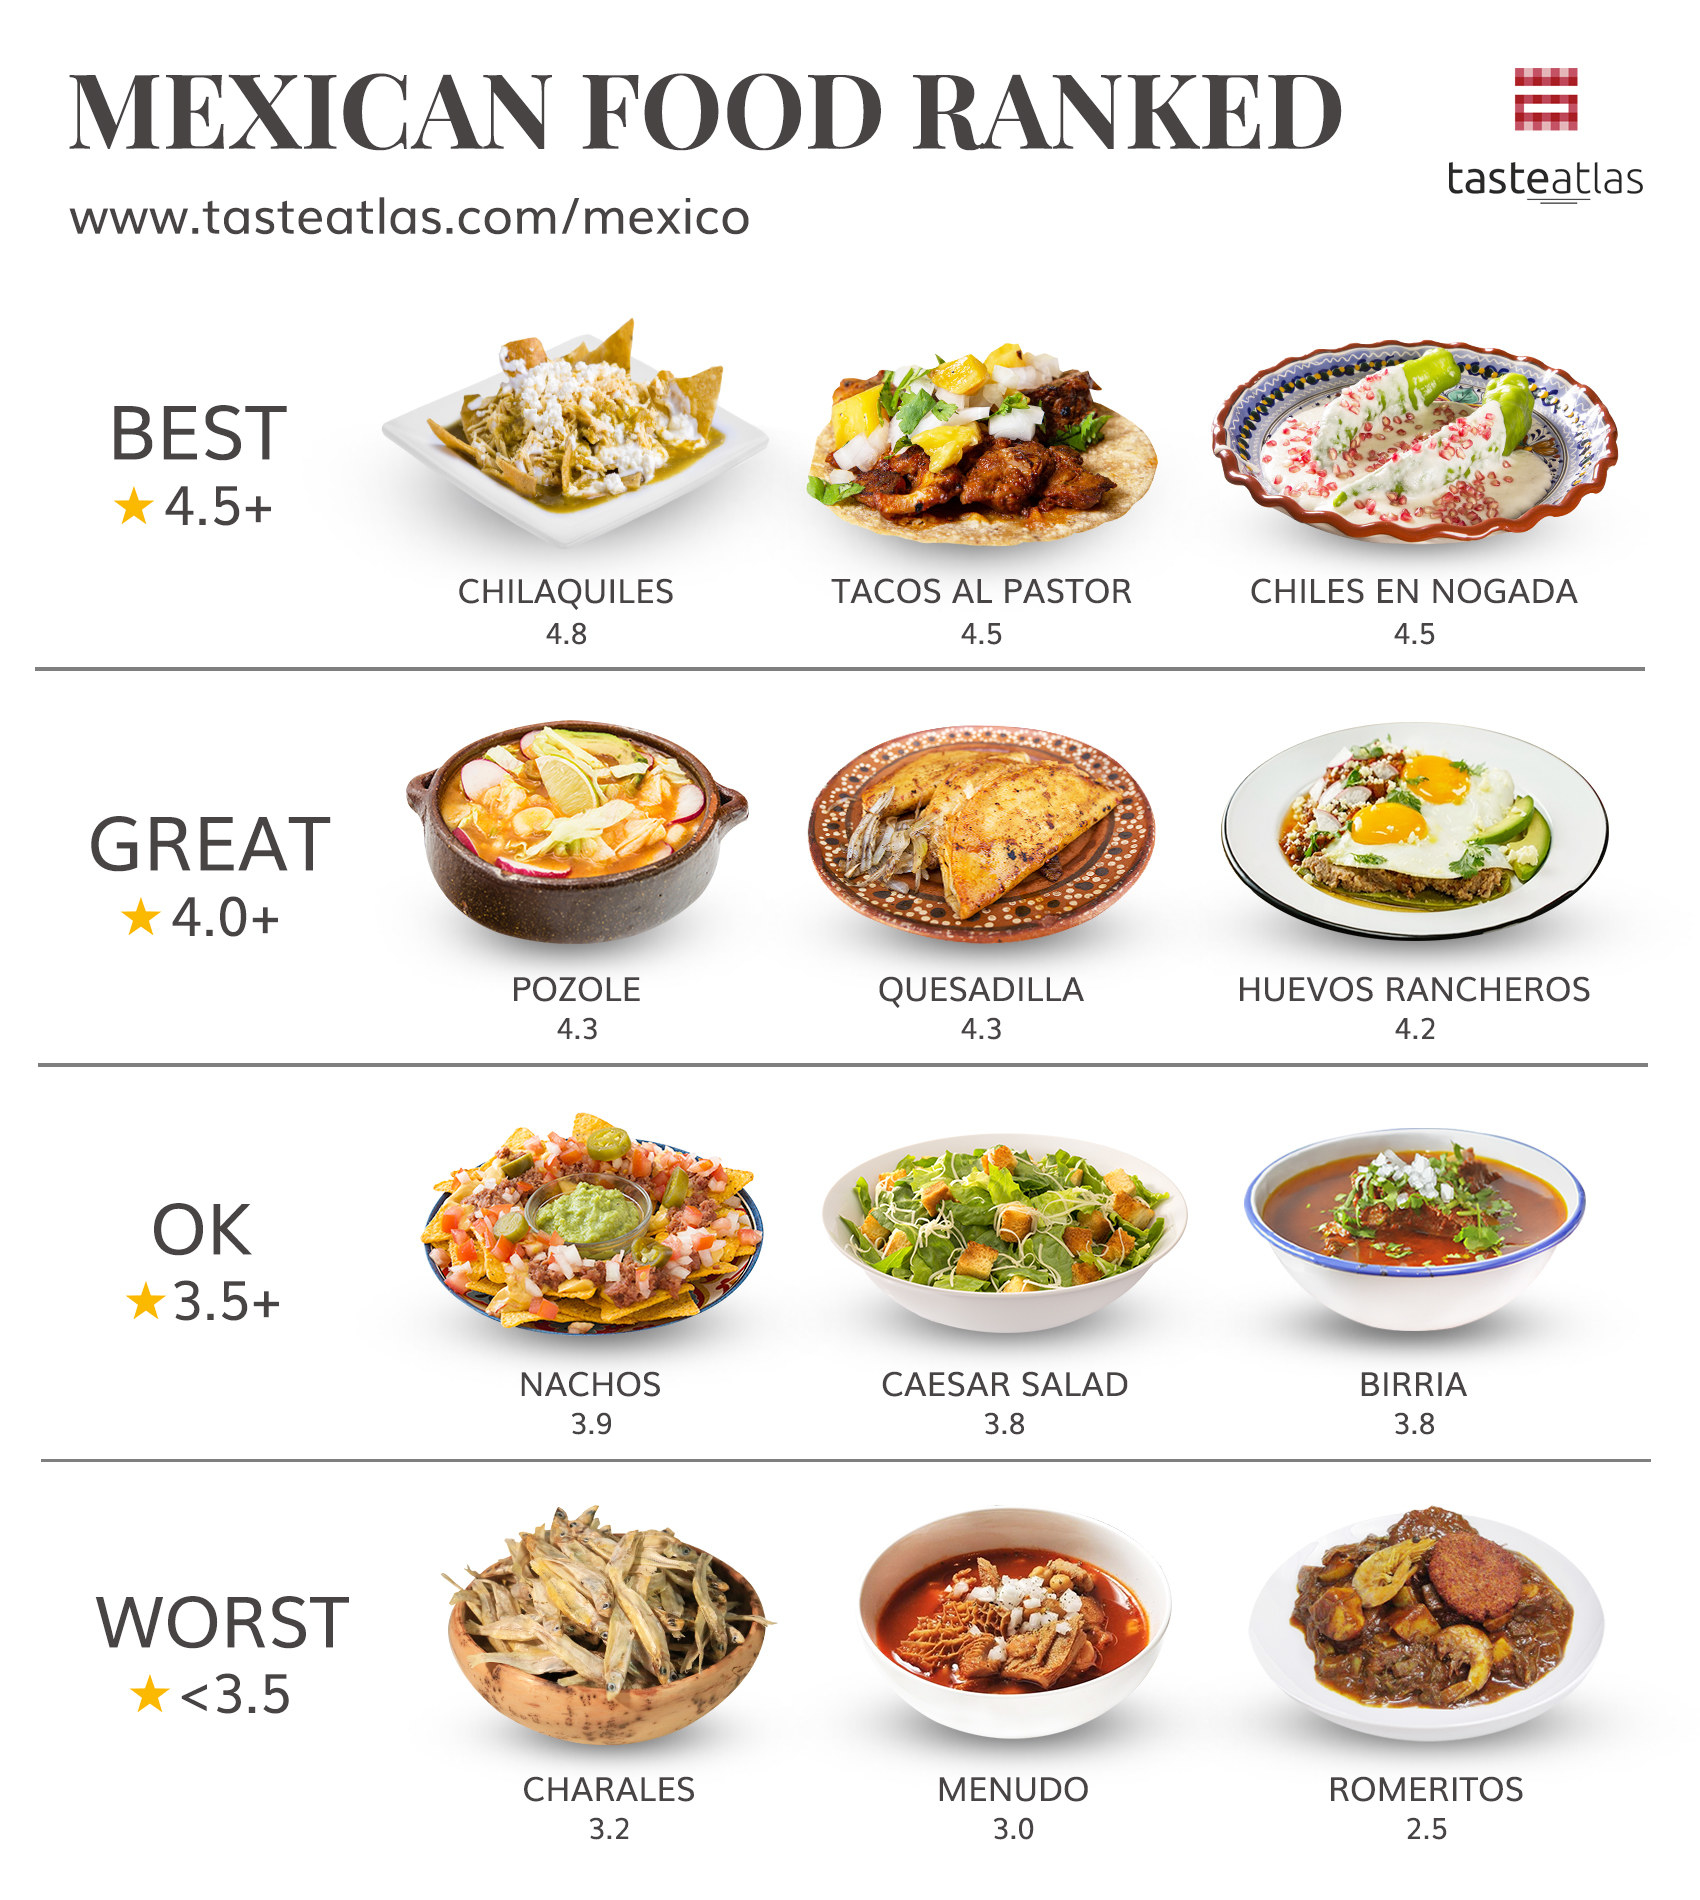 Graphic showing chilaquiles ranked best